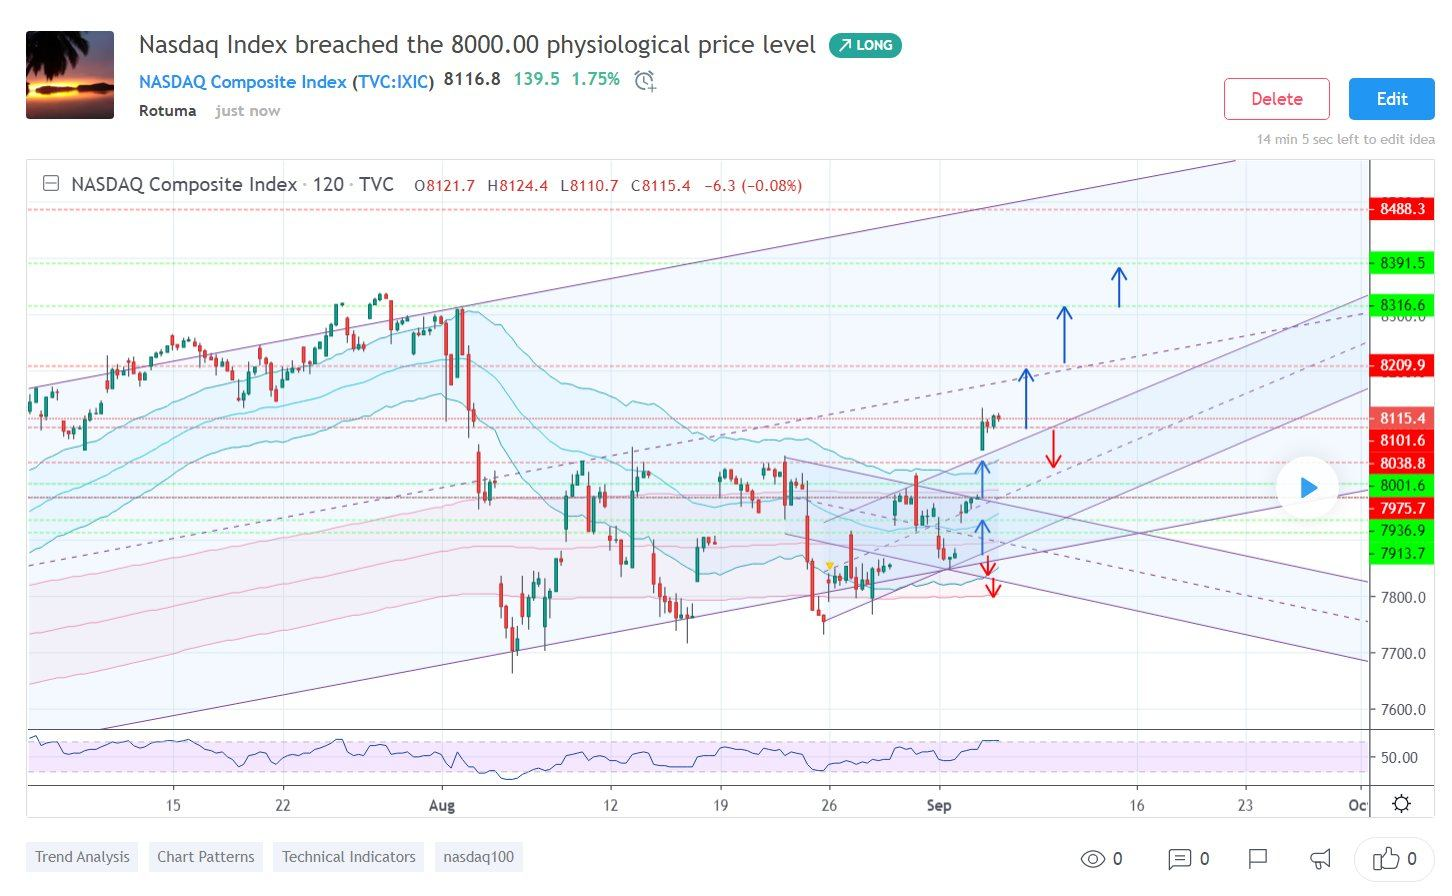 Dow Jones, Nasdaq, and S&P 500 breaks a physiological